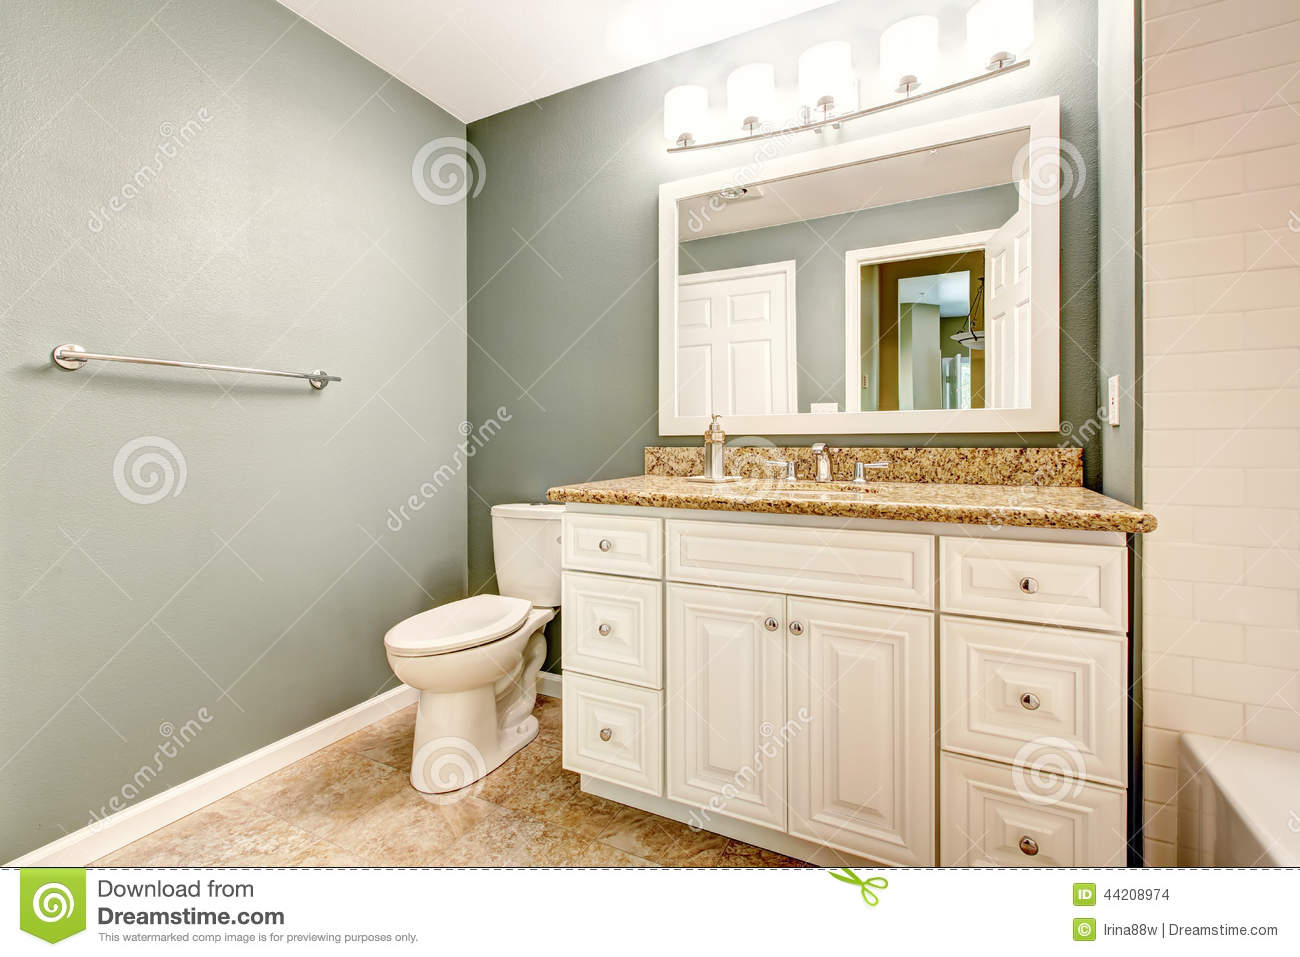 White Bathroom Vanity Cabinet With Granite Top Stock Photo - Image ...